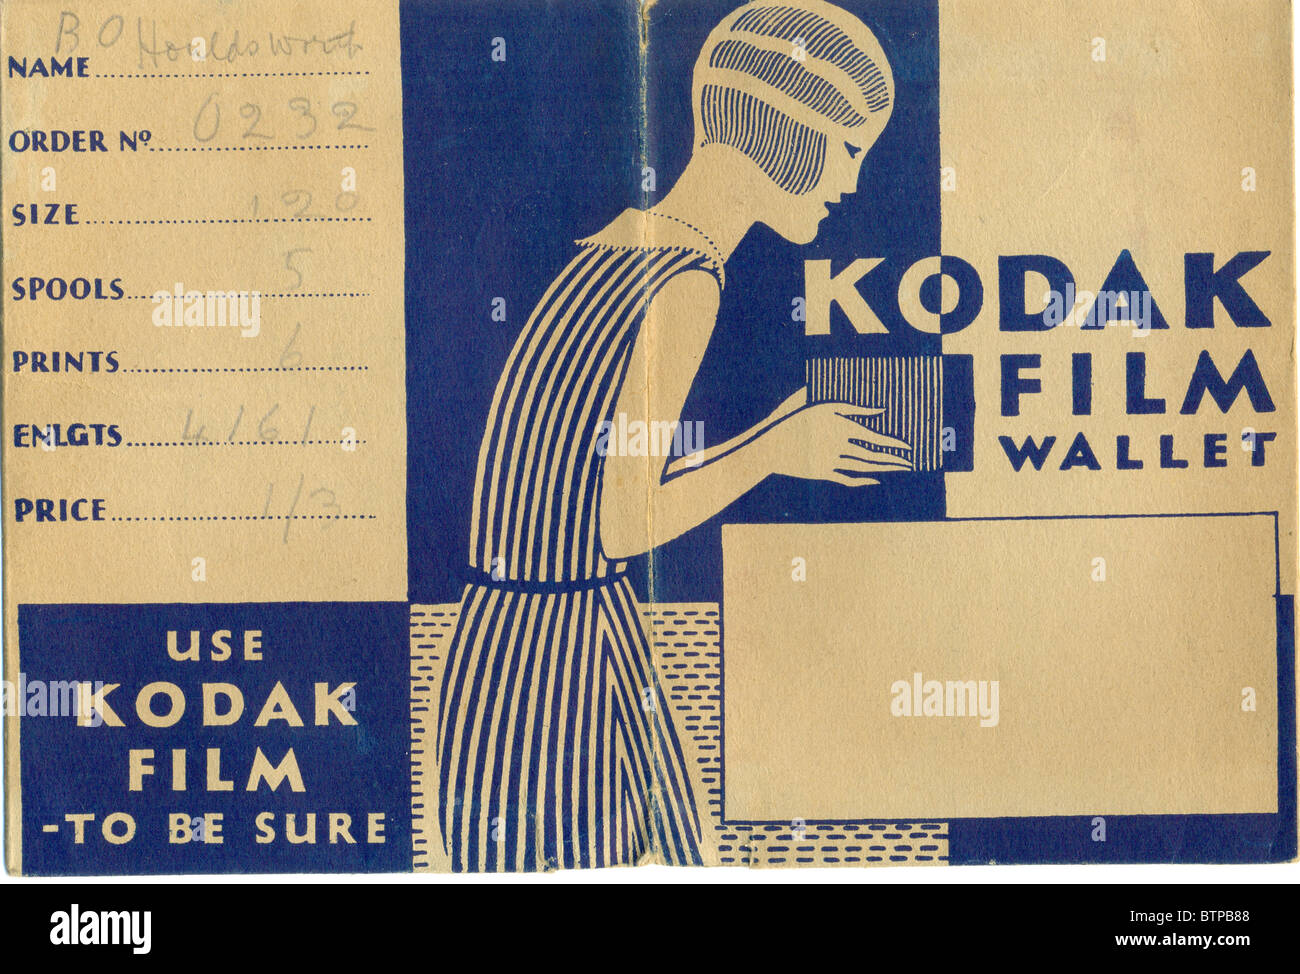 Kodak Film Box Stock Photos & Kodak Film Box Stock Images